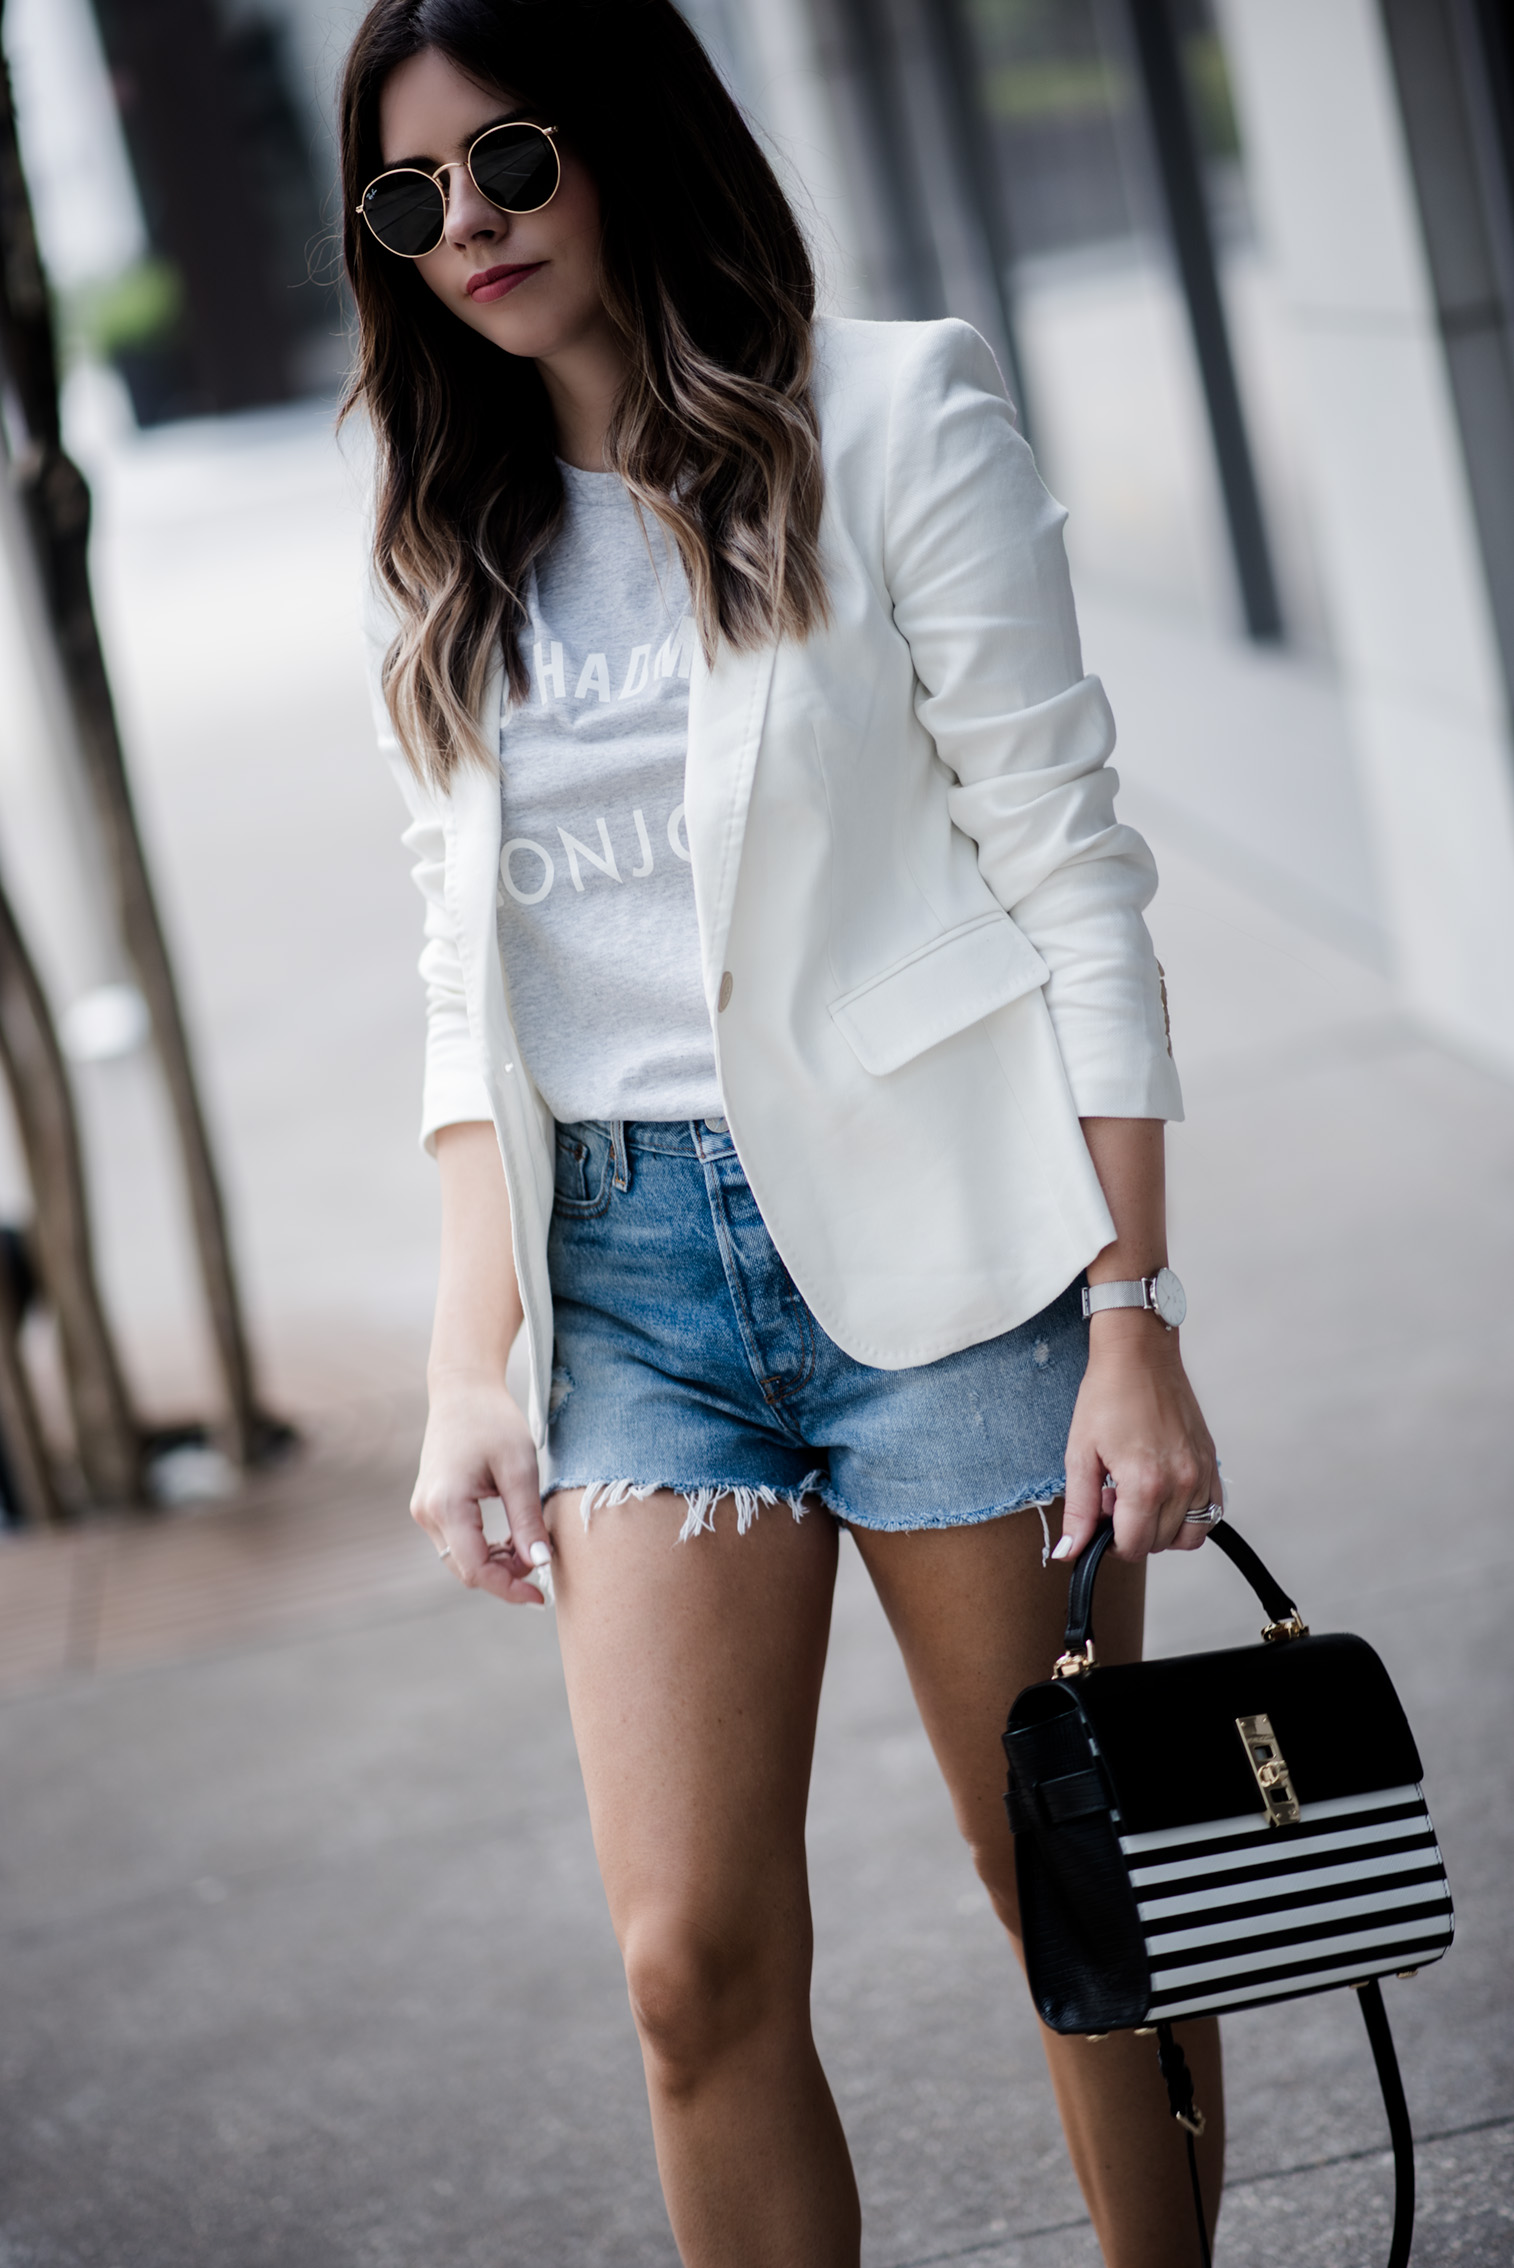 Tiffany Jais Houston fashion and lifestyle blogger | graphic tee outfits, how to wear a blazer with shorts, street style summer, casual outfit ideas, blazer outfits,